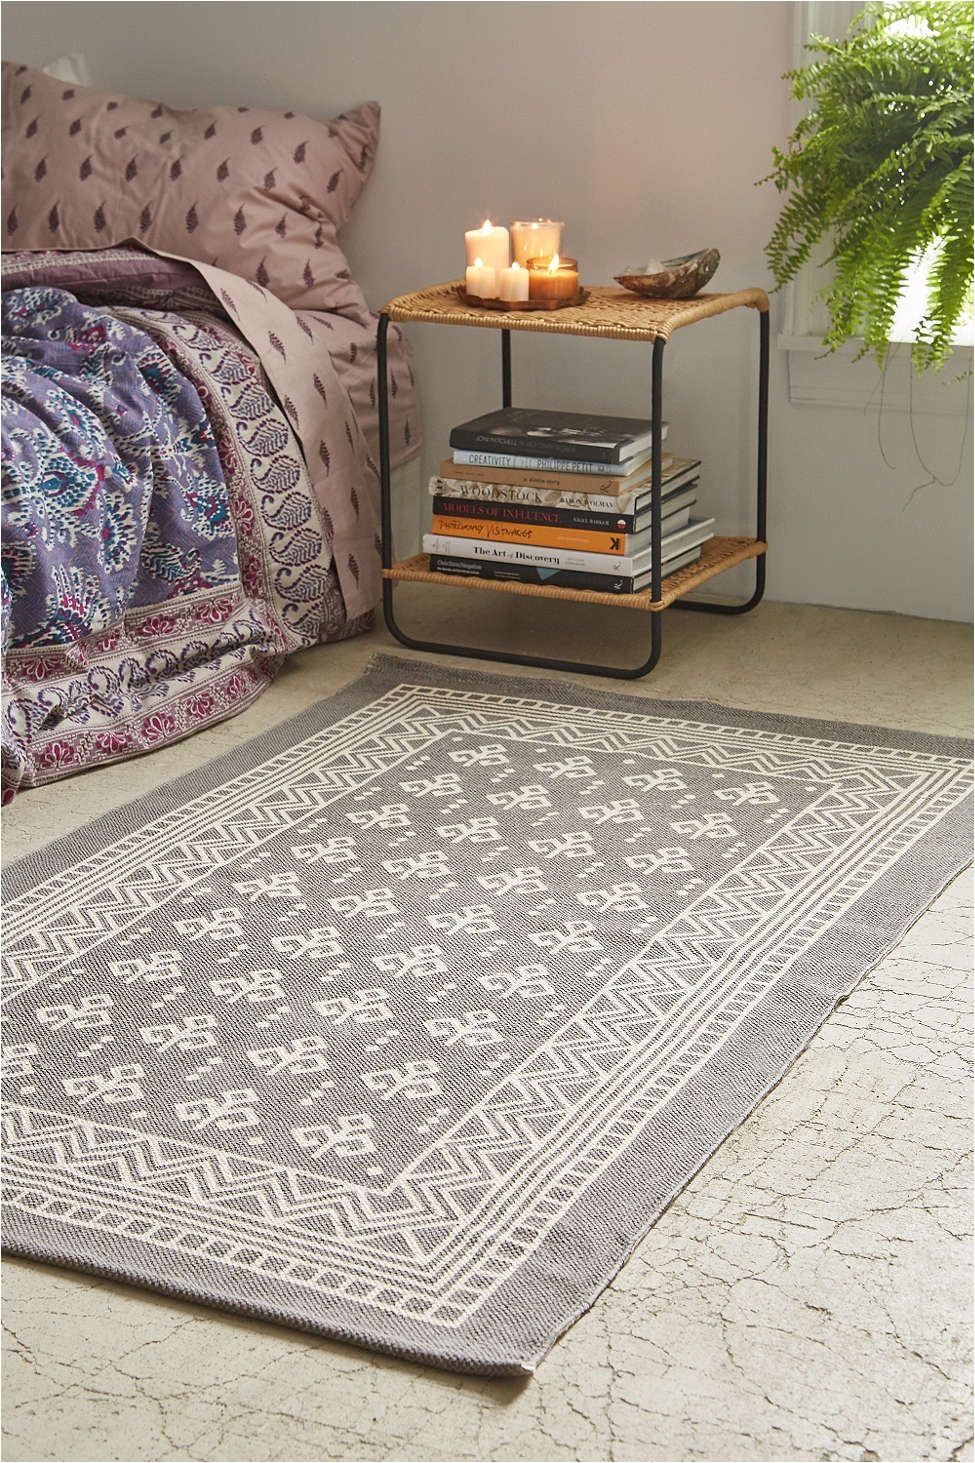 actual 8x10 master bedroom rug 199 magical thinking boho border printed rug